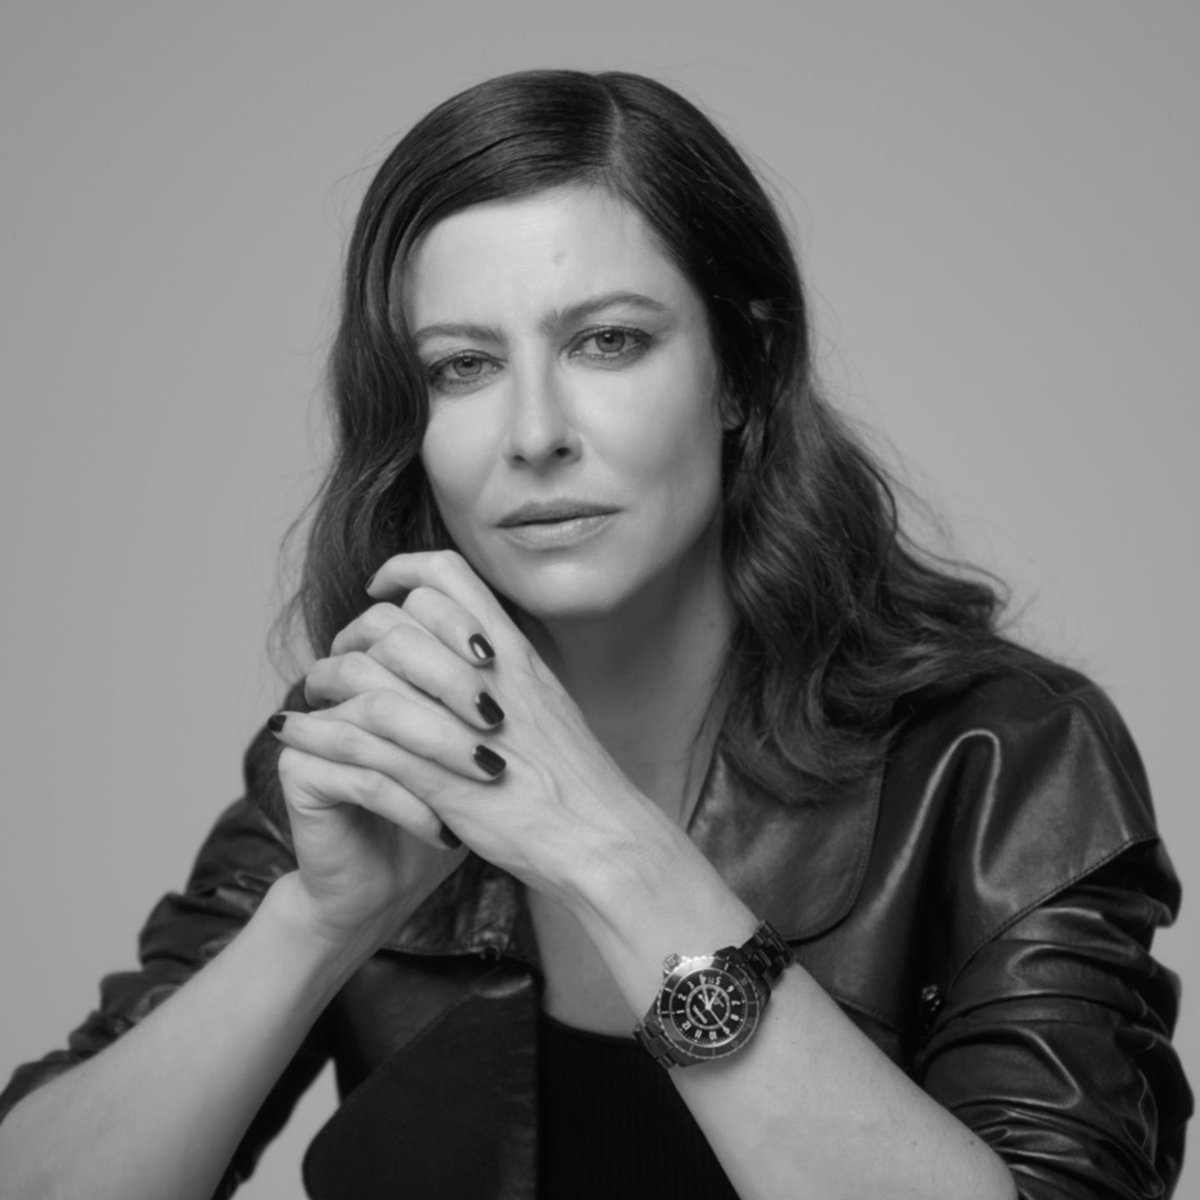 """""""Time is rhythm, it's music in fact, well when we accept to listen to it."""" Anna Mouglalis wears the black ceramic version of the new J12 watch. Discover on http://chanel.com/-j12AnnaMouglalis… #TheNewJ12 #ItsAllAboutSeconds"""